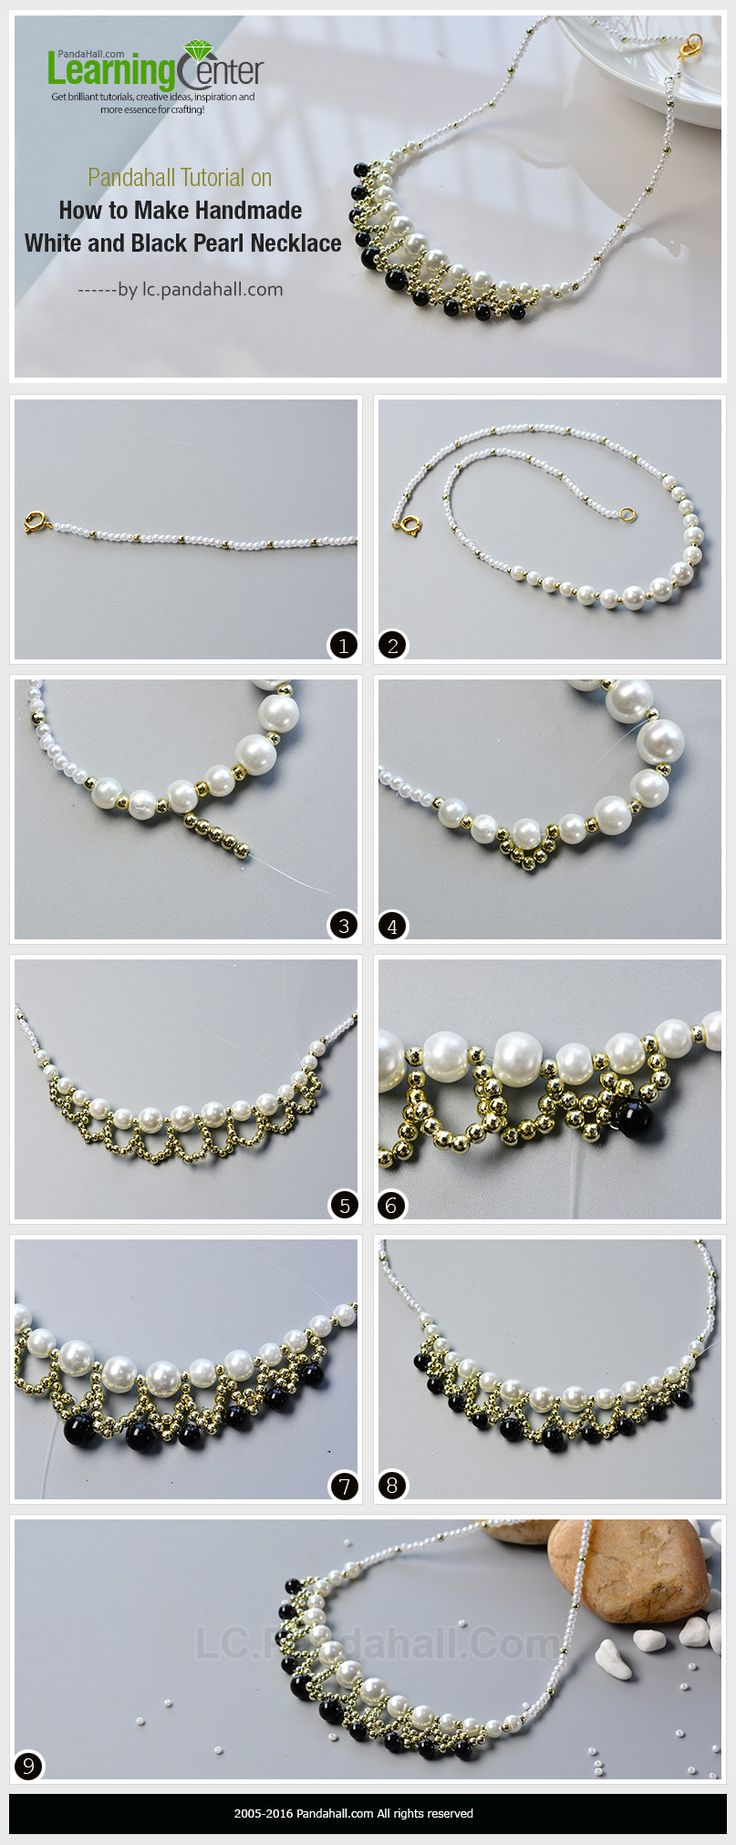 Pandahall Tutorial on How to Make Handmade White and Black Pearl Necklace from LC.Pandahall.com